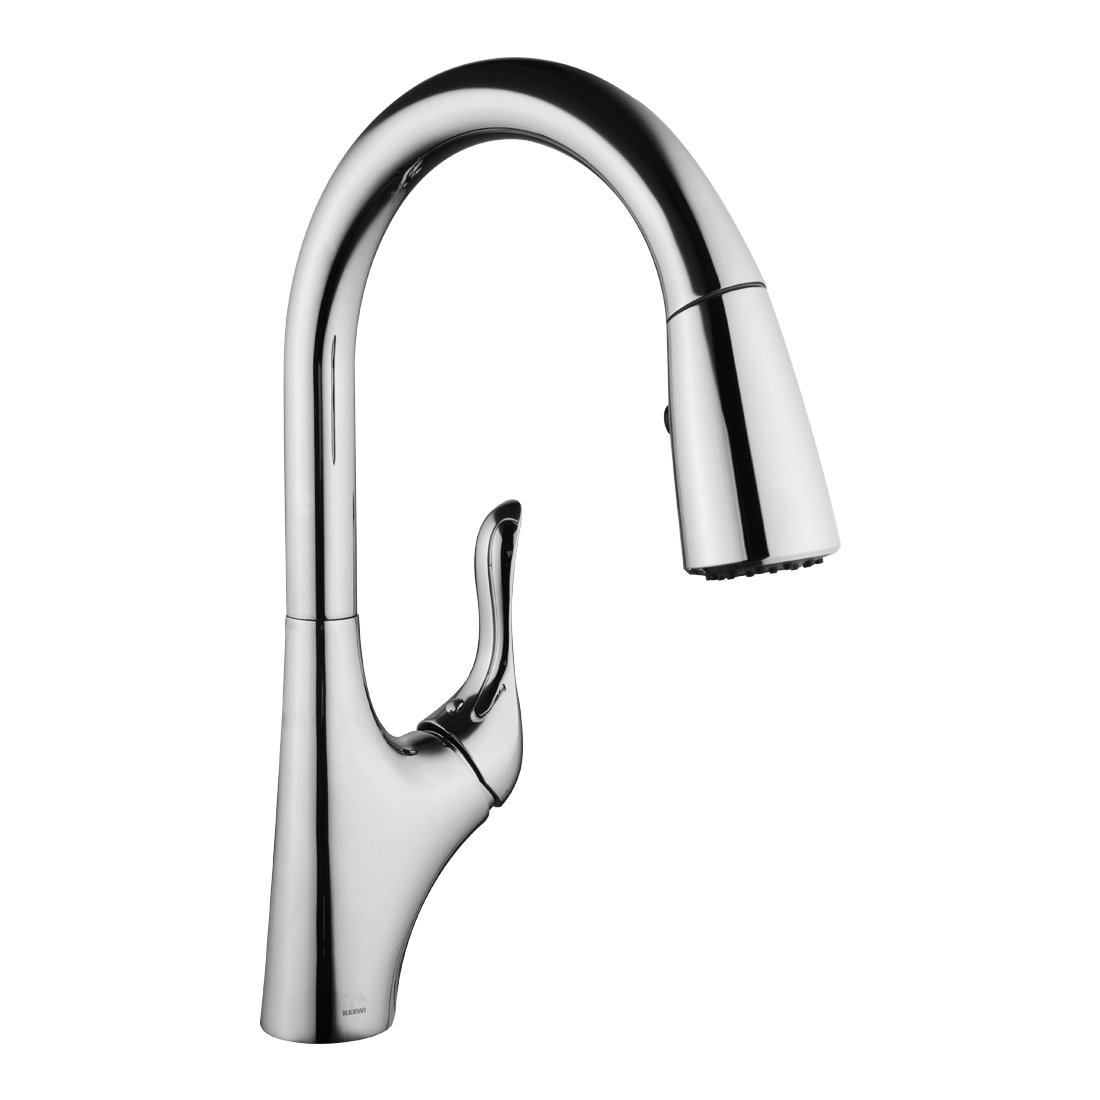 Keewi Modern Chrome Kitchen Faucet Single Handle With Pull Down Sprayer, Single  Hole Commercial Brass Kitchen Faucet With Sprayer, Lead Free, WaterSense,  ...